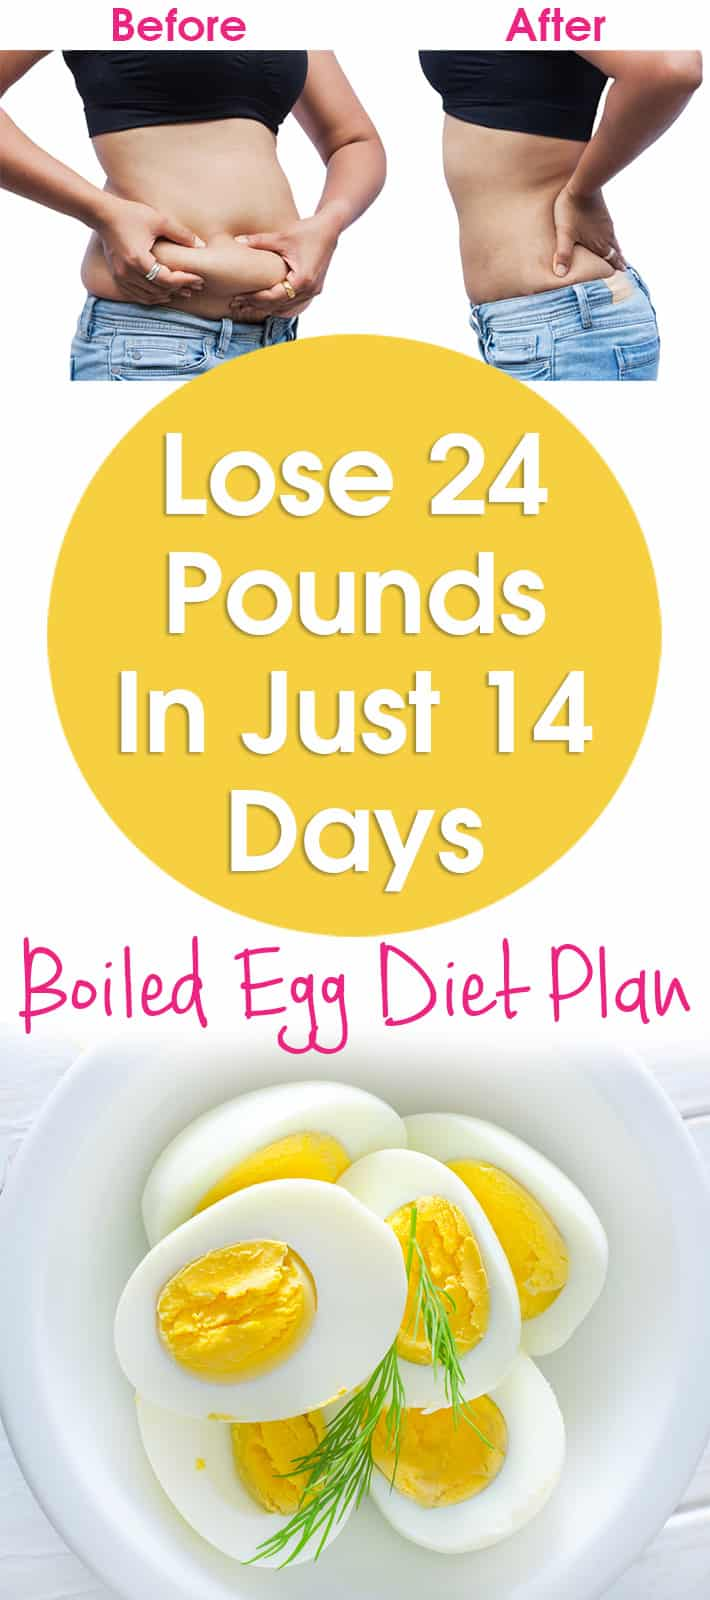 Lose 5 Pounds in Two Days, The Healthy Way forecasting